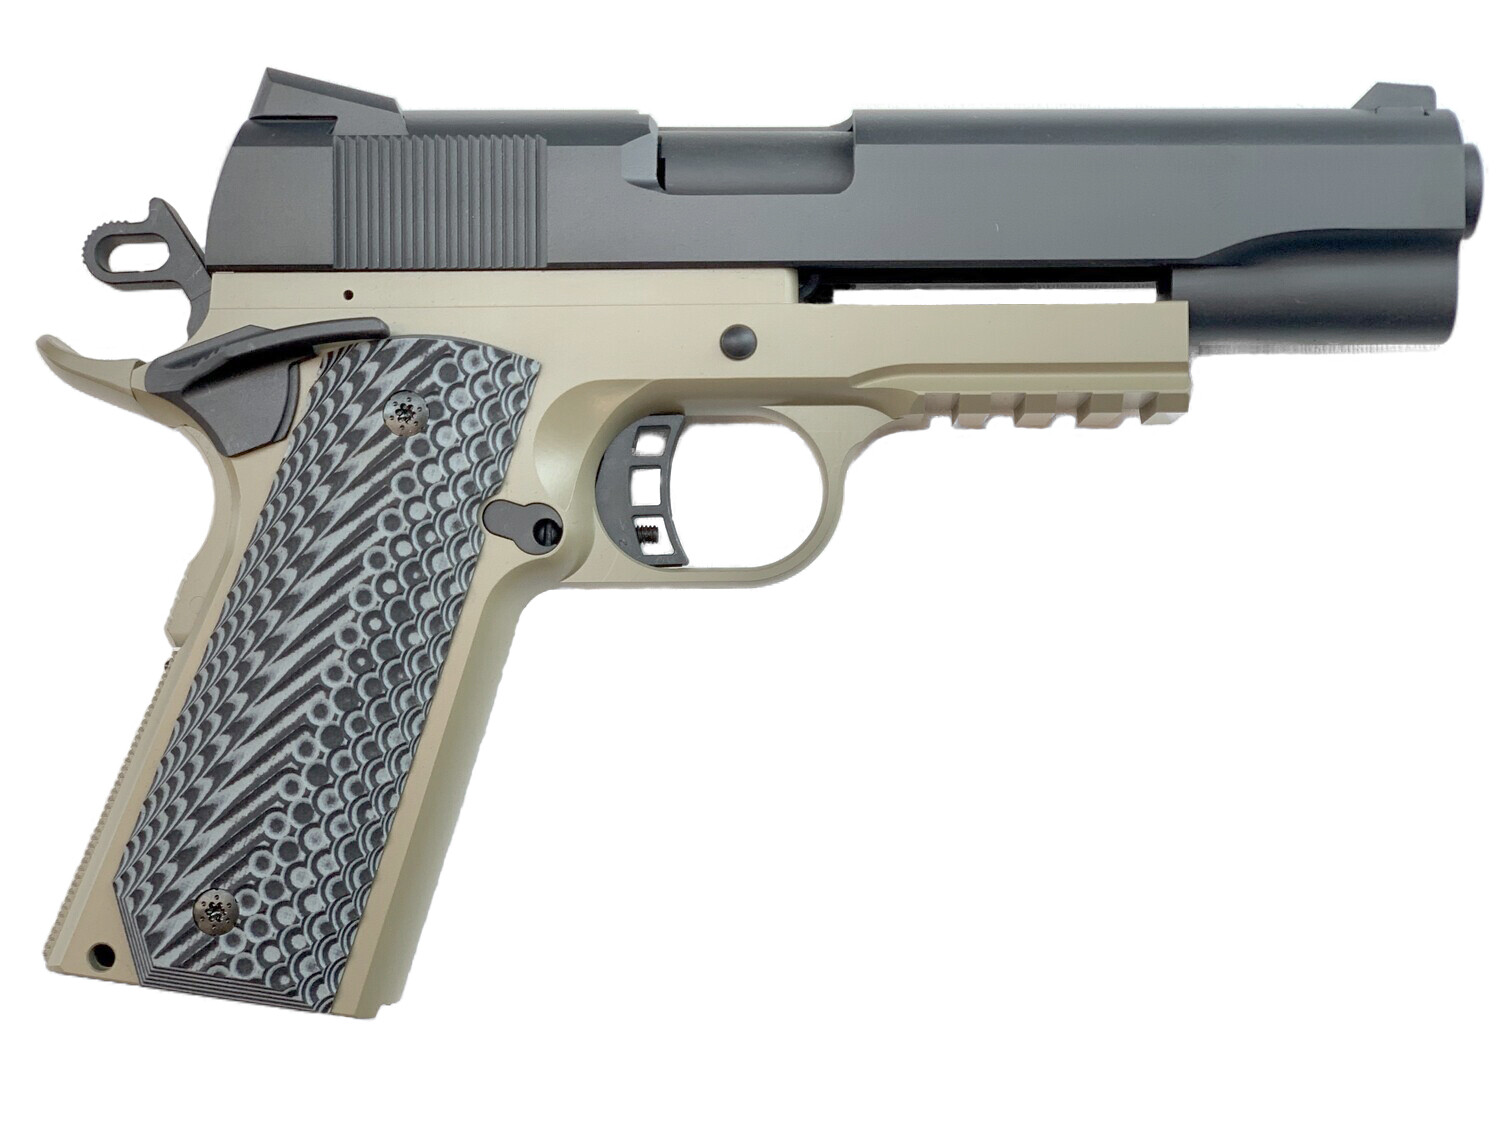 SALE!!! FREE STEALTH ARMS PHANTOM 1911 JIG WITH ORDER!!! 1911 Tactical Full Size 80% Builders Kit FDE / BLK: Choice of .45 ACP - 9mm - 10mm - 40 Cal